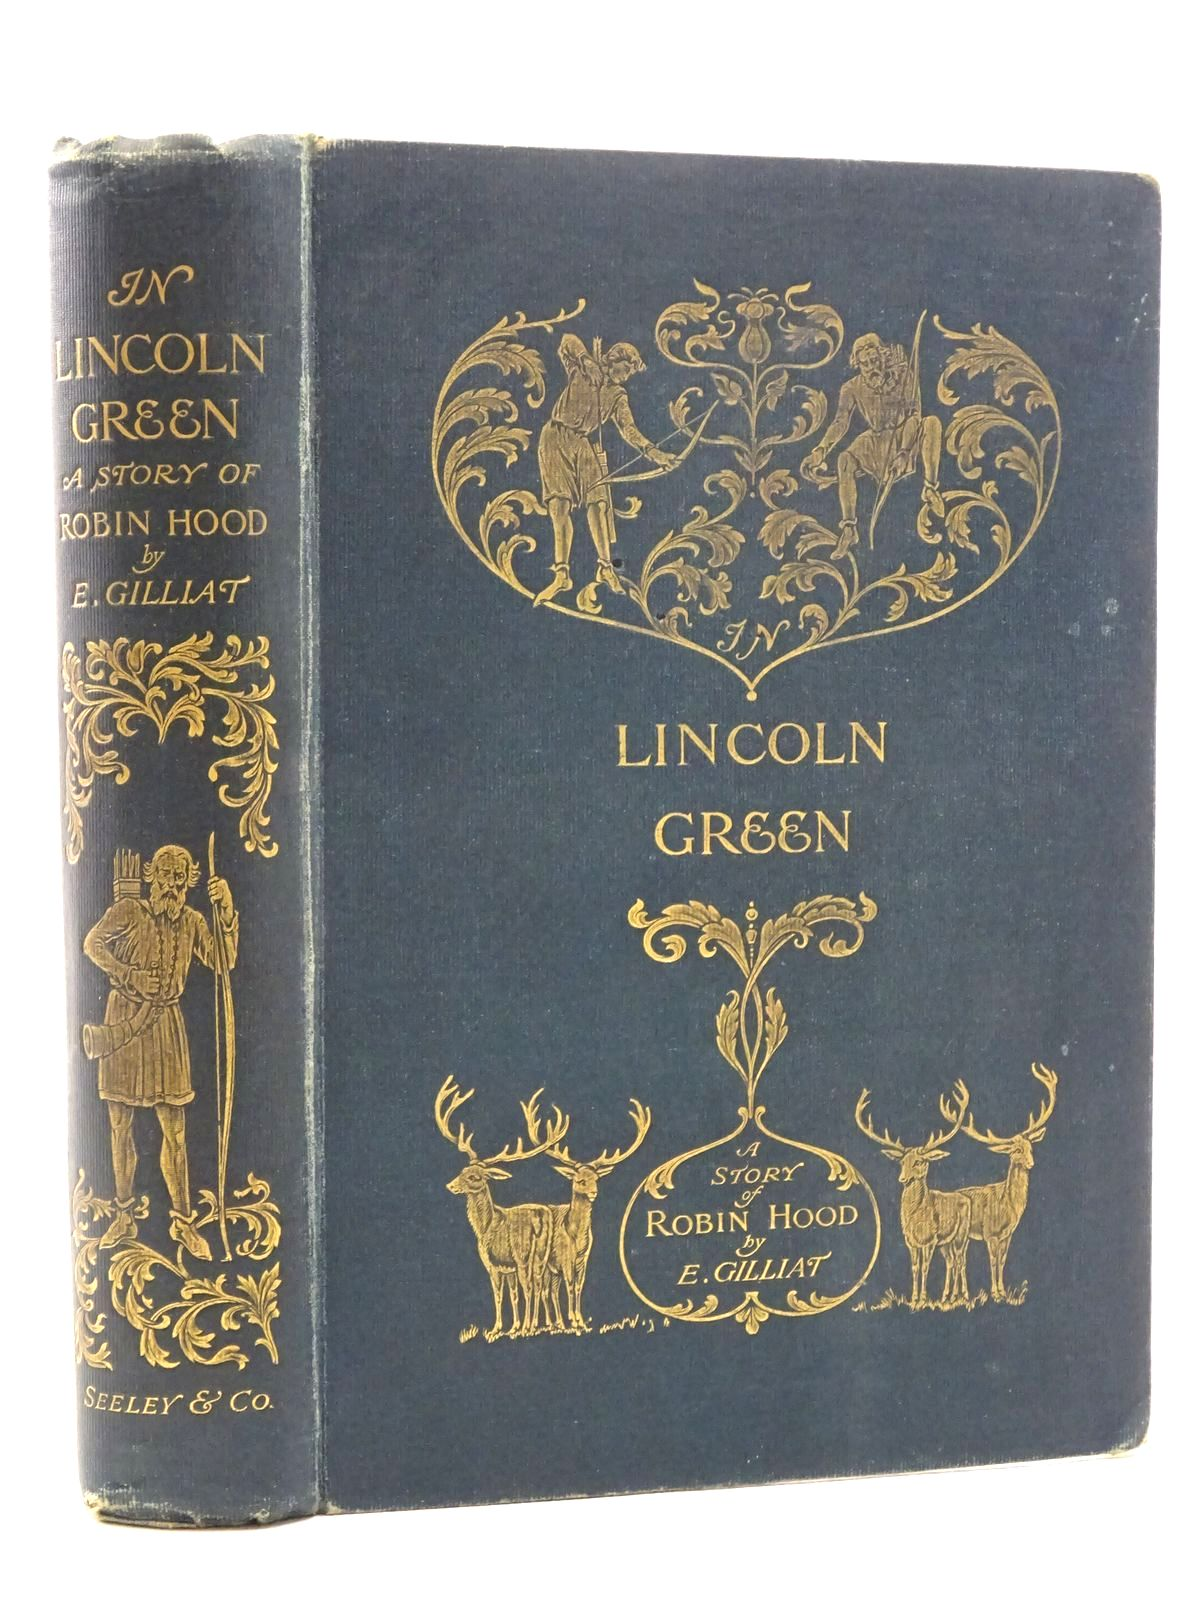 Photo of IN LINCOLN GREEN: A MERRIE TALE OF ROBIN HOOD written by Gilliat, E. illustrated by Cleaver, Ralph published by Seeley and Co. Limited (STOCK CODE: 1317315)  for sale by Stella & Rose's Books